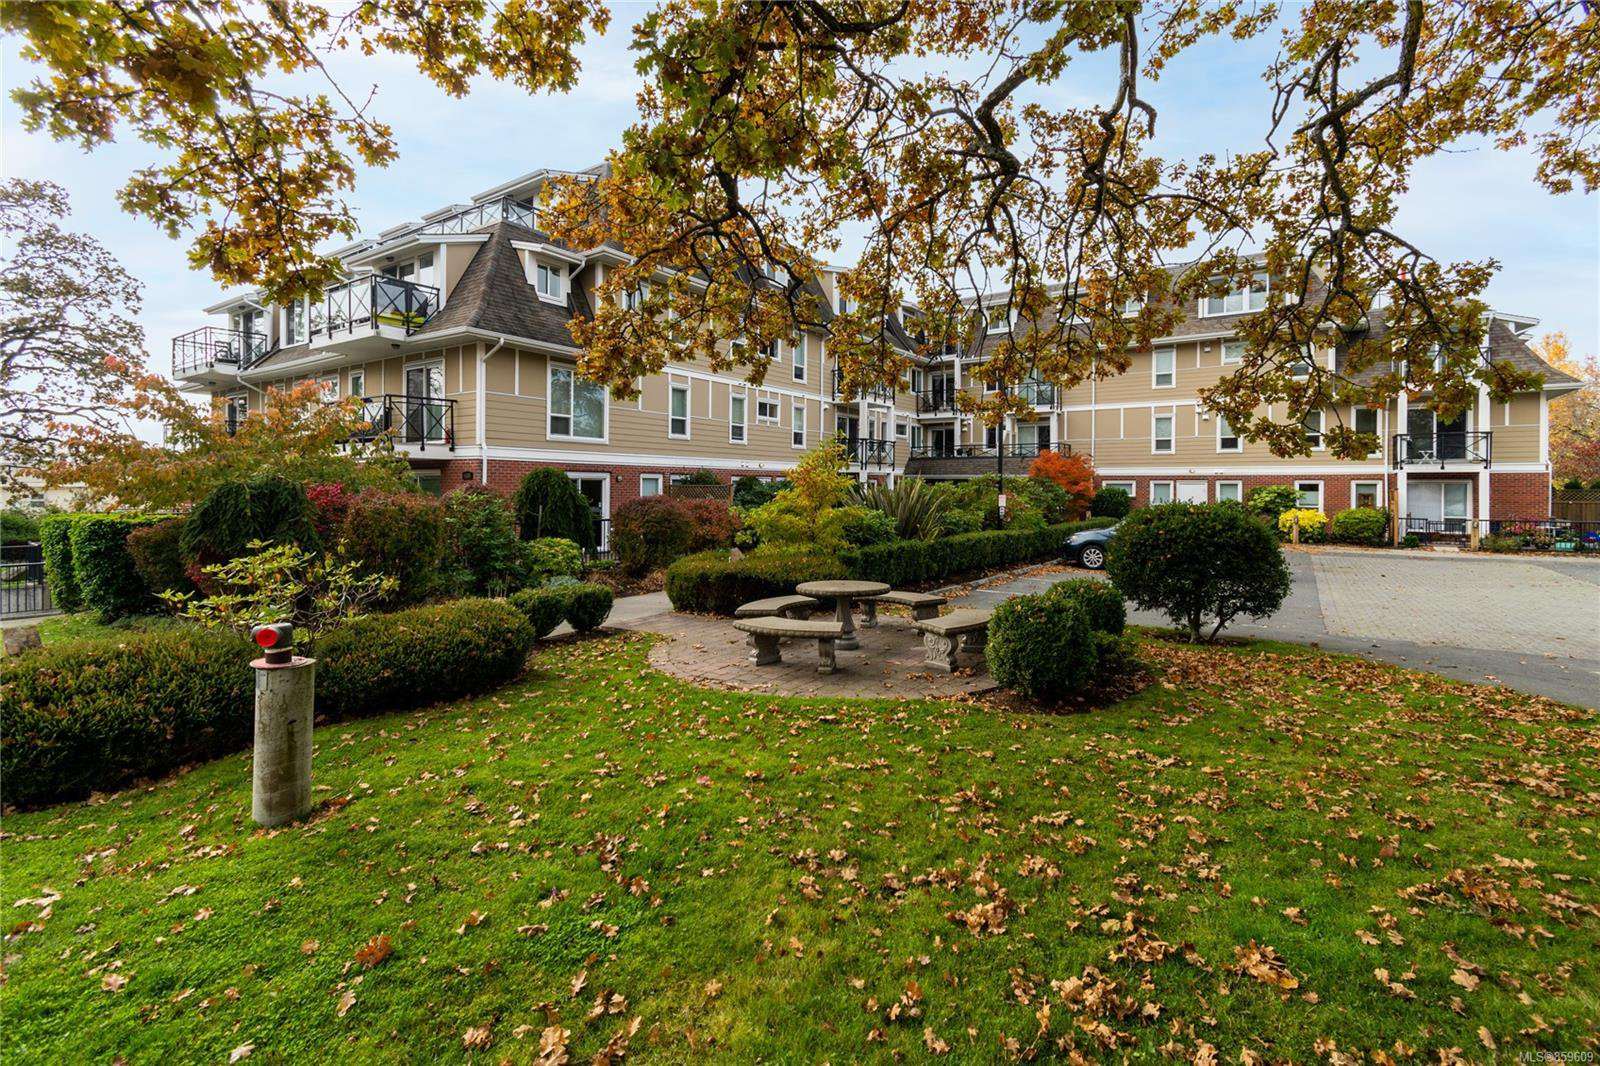 Main Photo: 105 4536 Viewmont Ave in : SW Royal Oak Condo for sale (Saanich West)  : MLS®# 859609